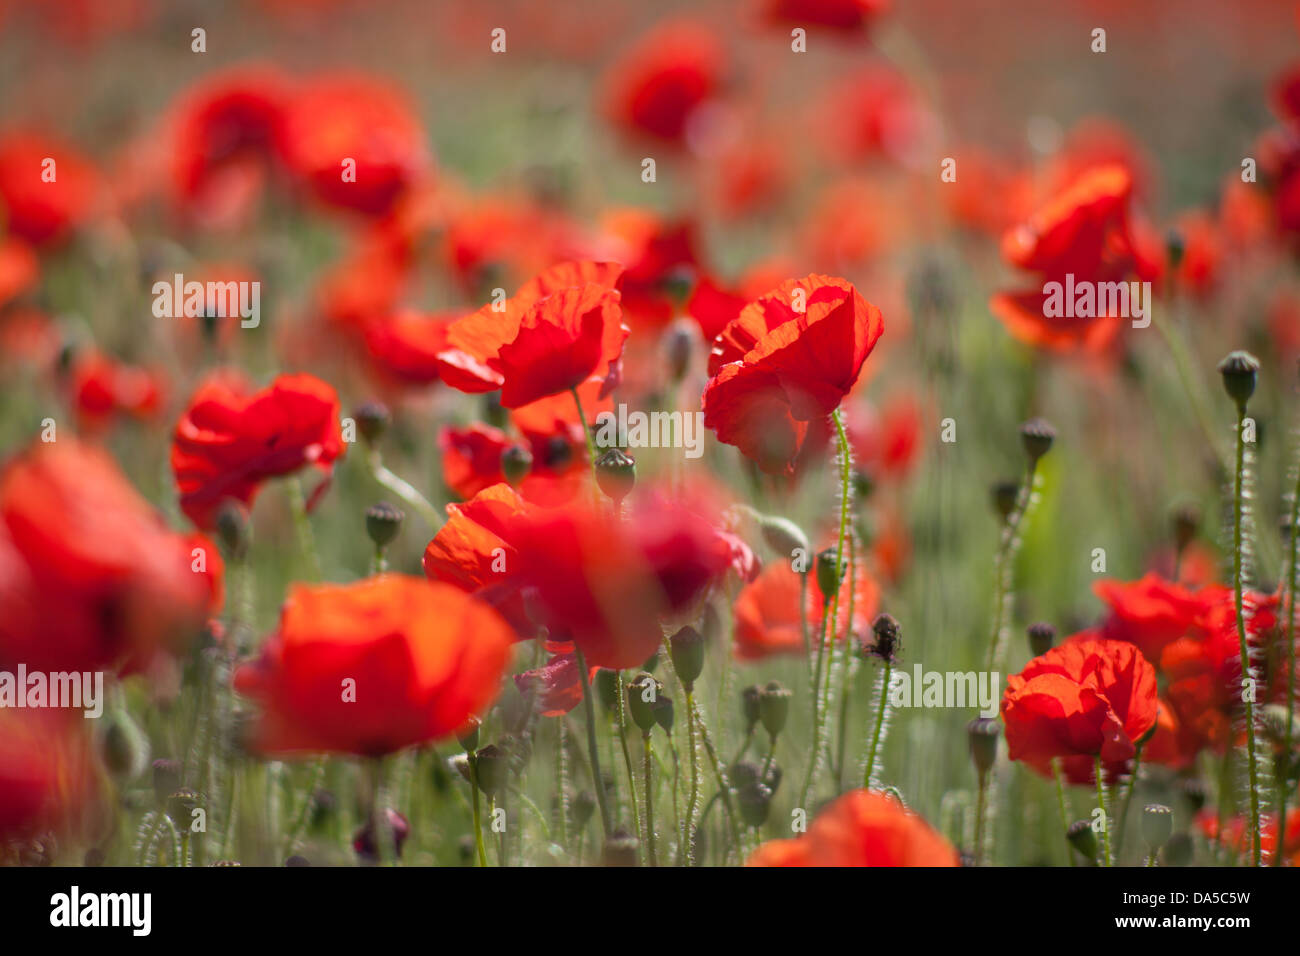 Close up of red poppy heads in a poppy field Harston, Cambridgeshire, UK - Stock Image